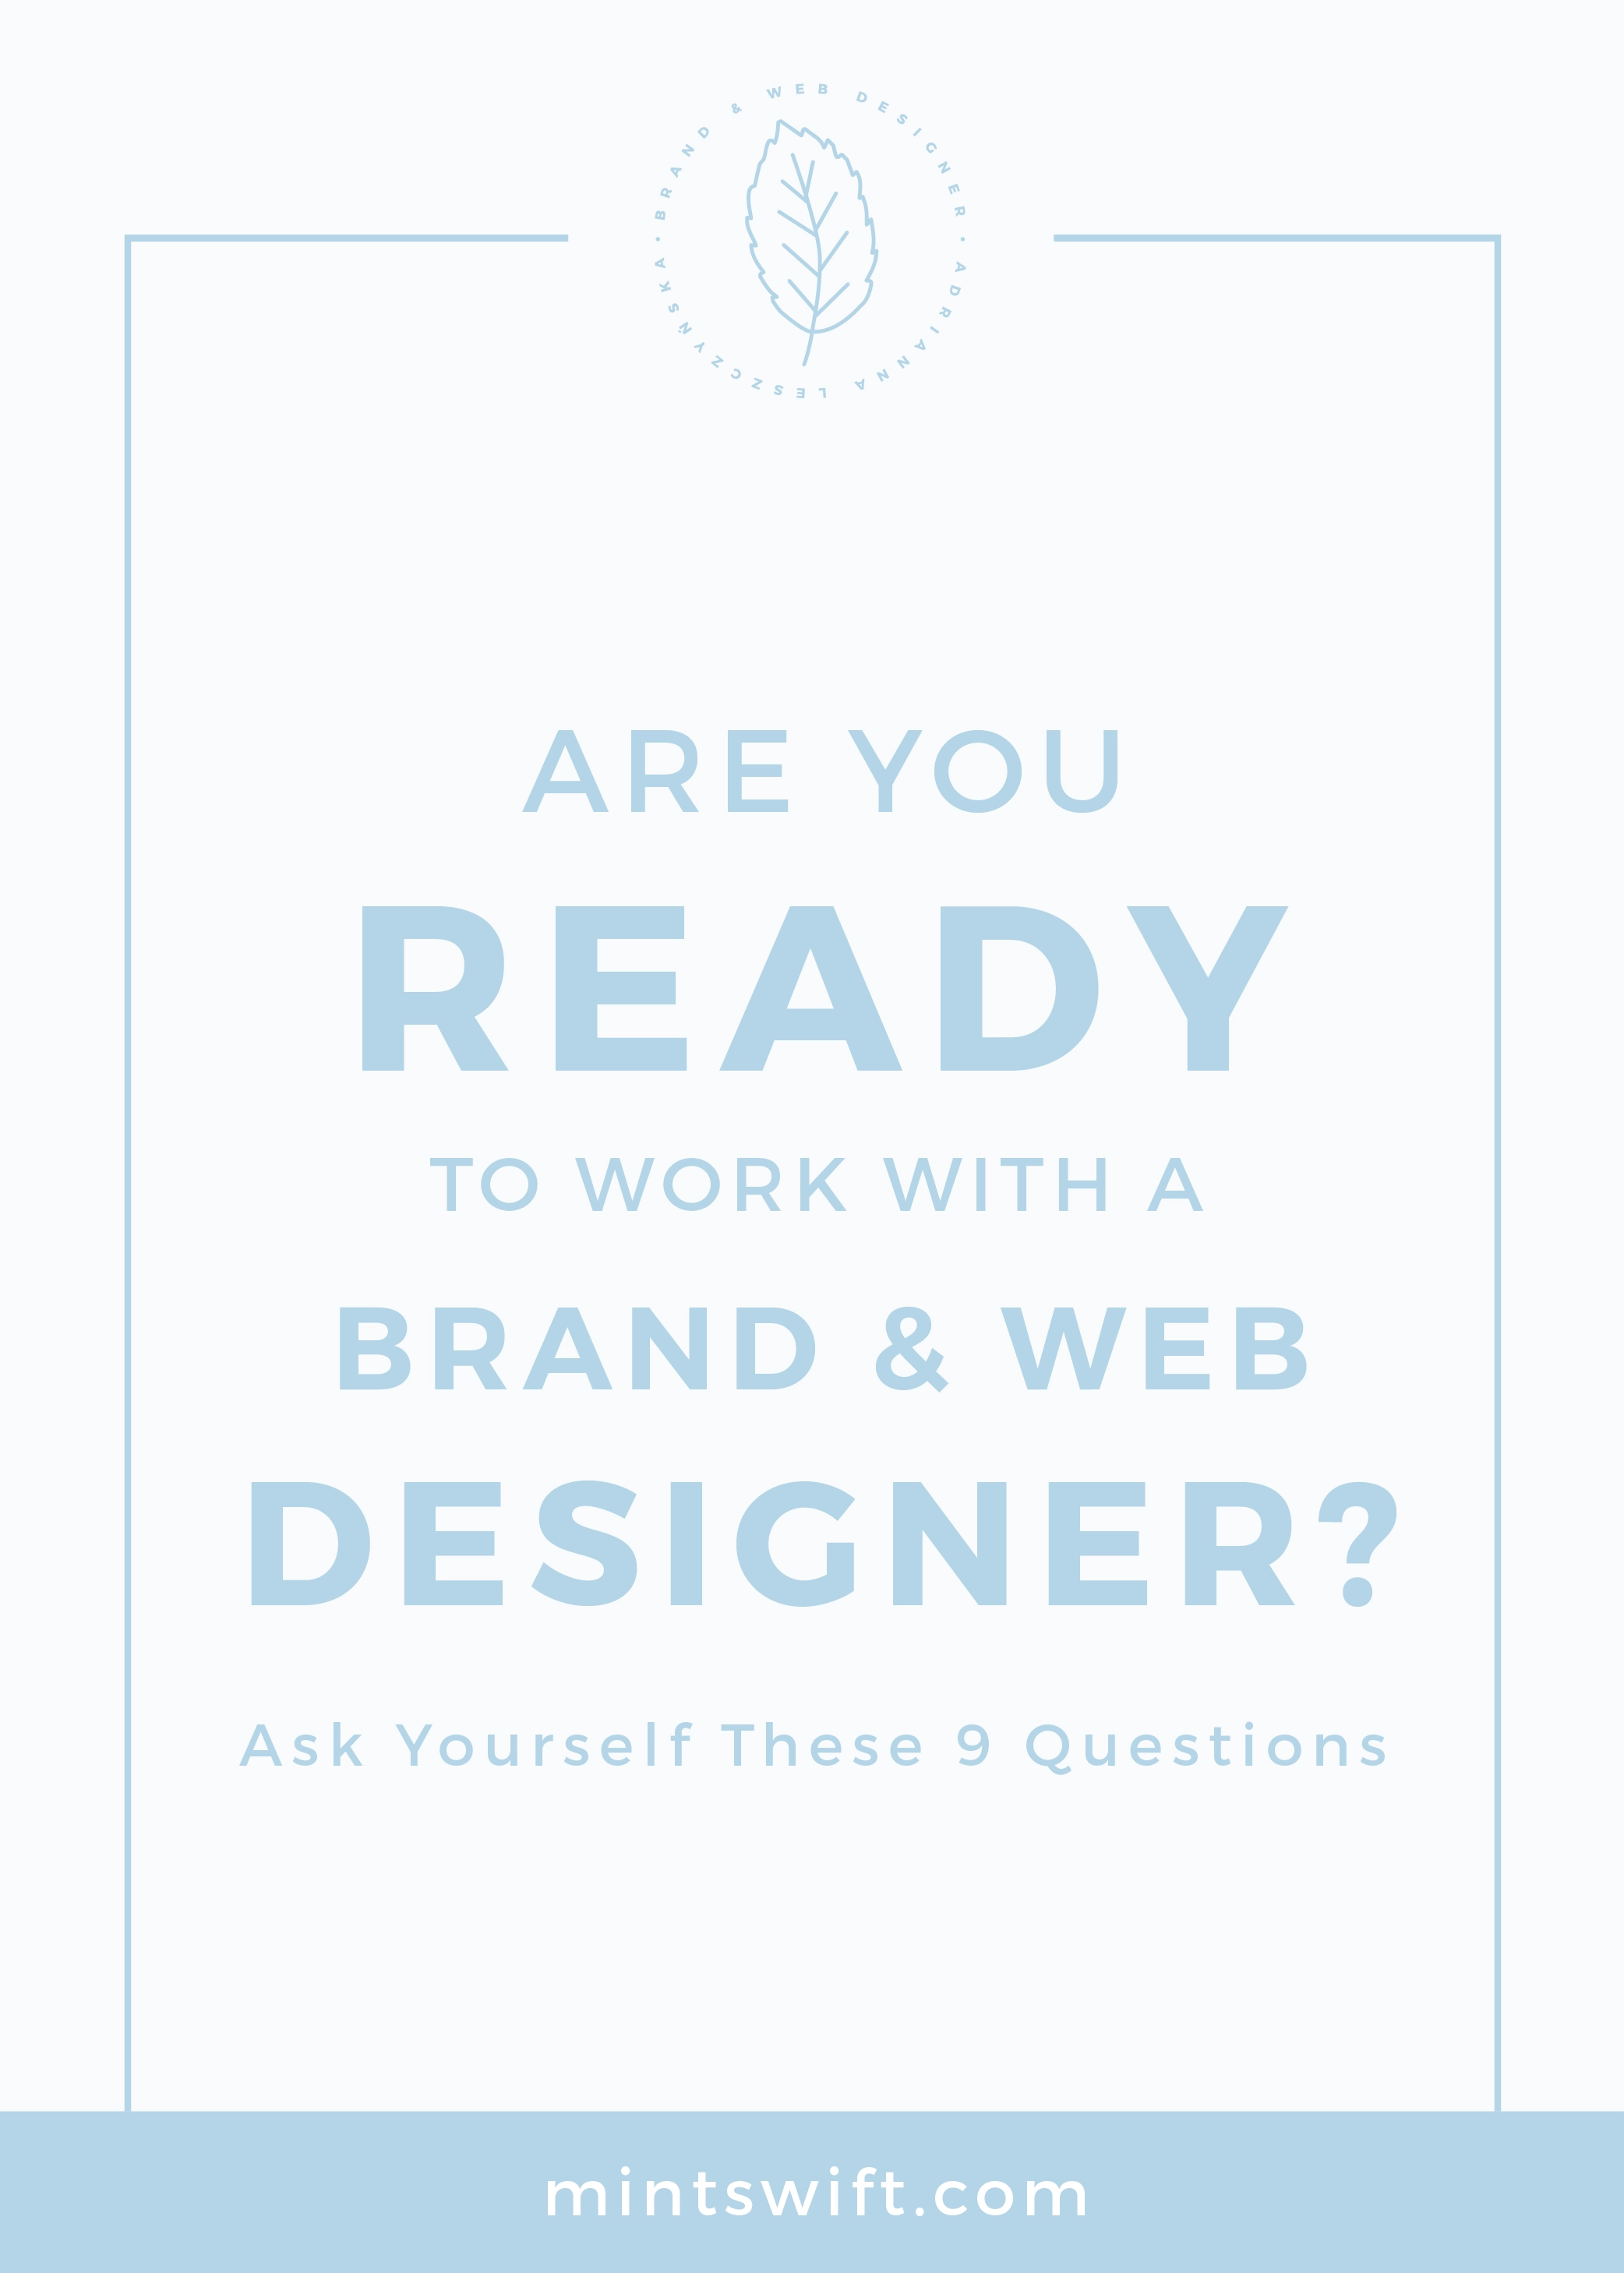 Are You Ready to Work With a Brand & Web Designer Ask Yourself These 9 Questions MintSwift